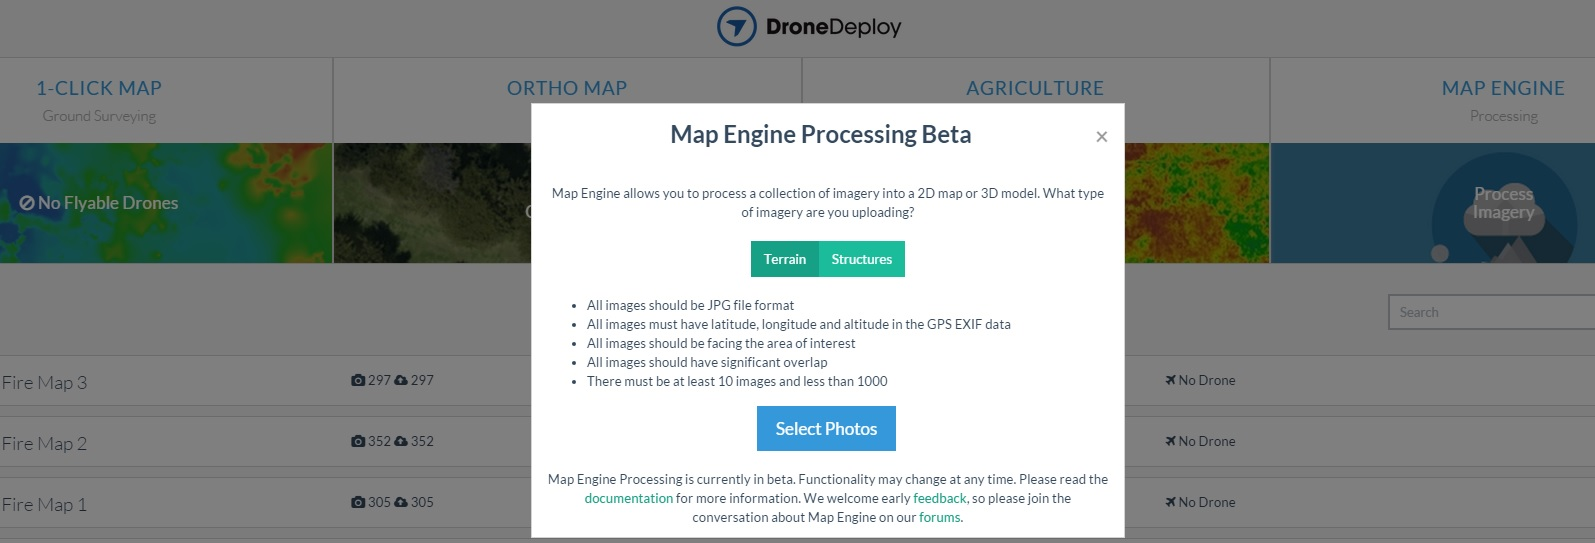 Drone Based 3D Model Mapping Basics | WhirlingTripod com